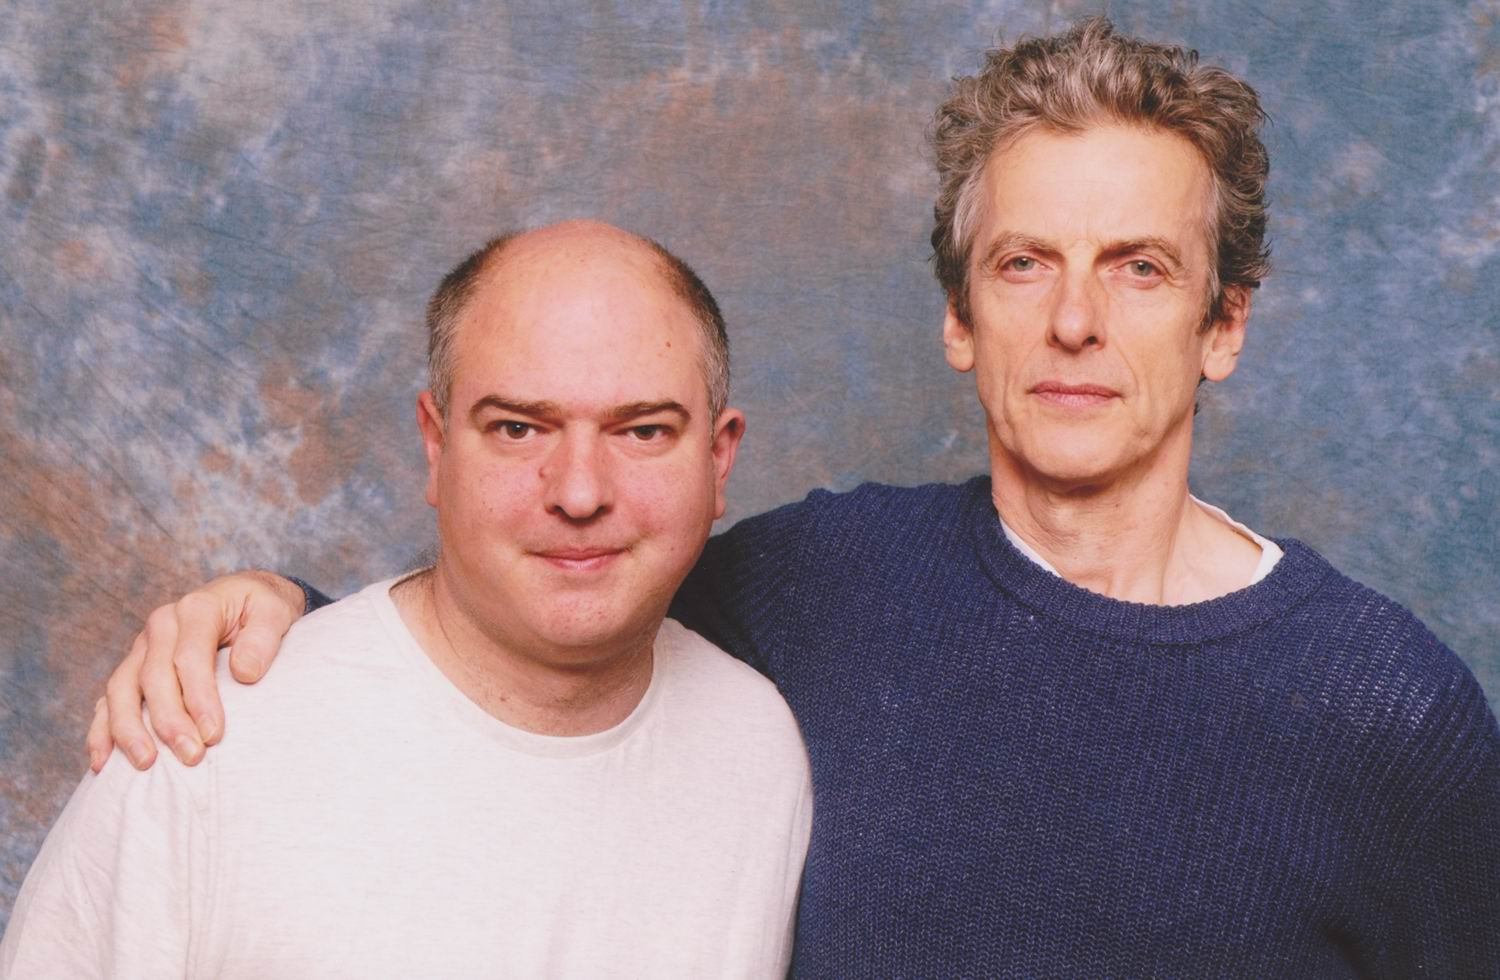 Andrew O'Day and Peter Capaldi